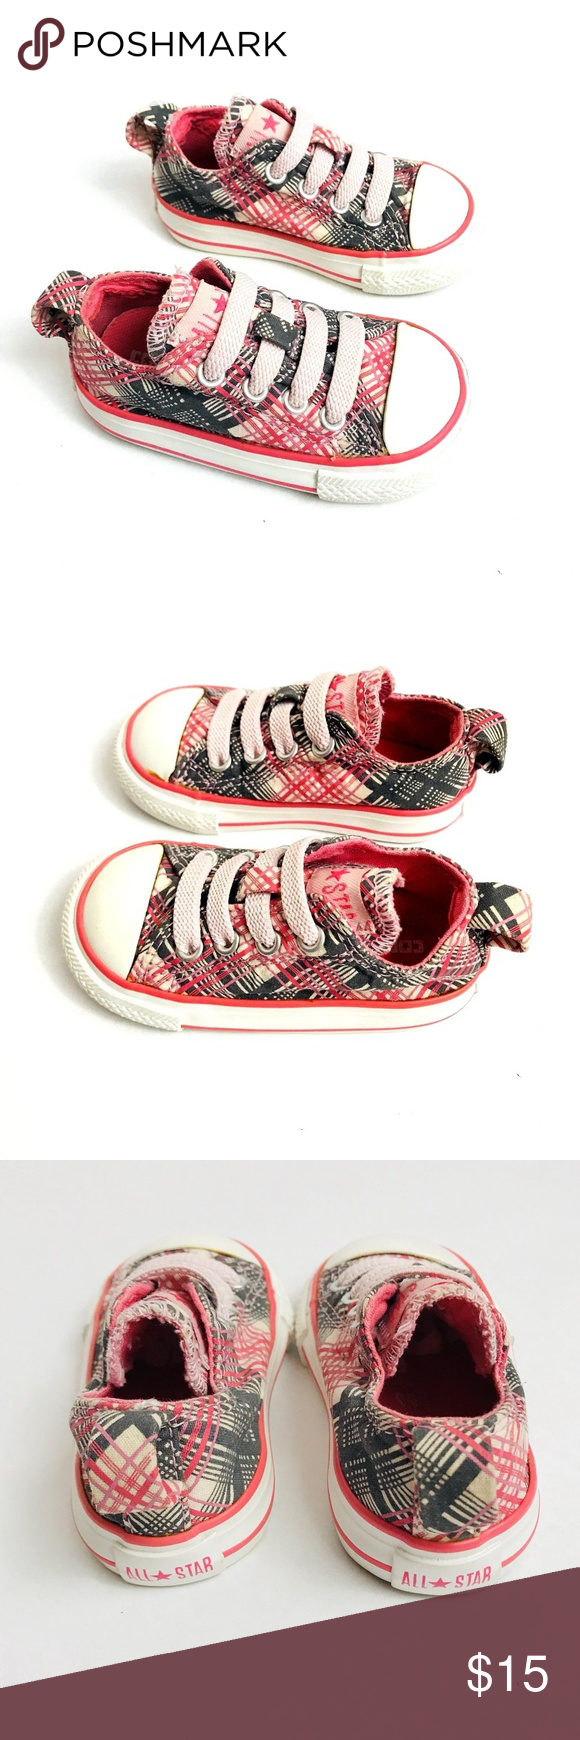 03d8e94eb961 Converse Chuck Taylor Infant Shoes Size 4 Pink Converse Chuck Taylor Infant  Shoes Size 4 Slip on Plaid and checks Pink